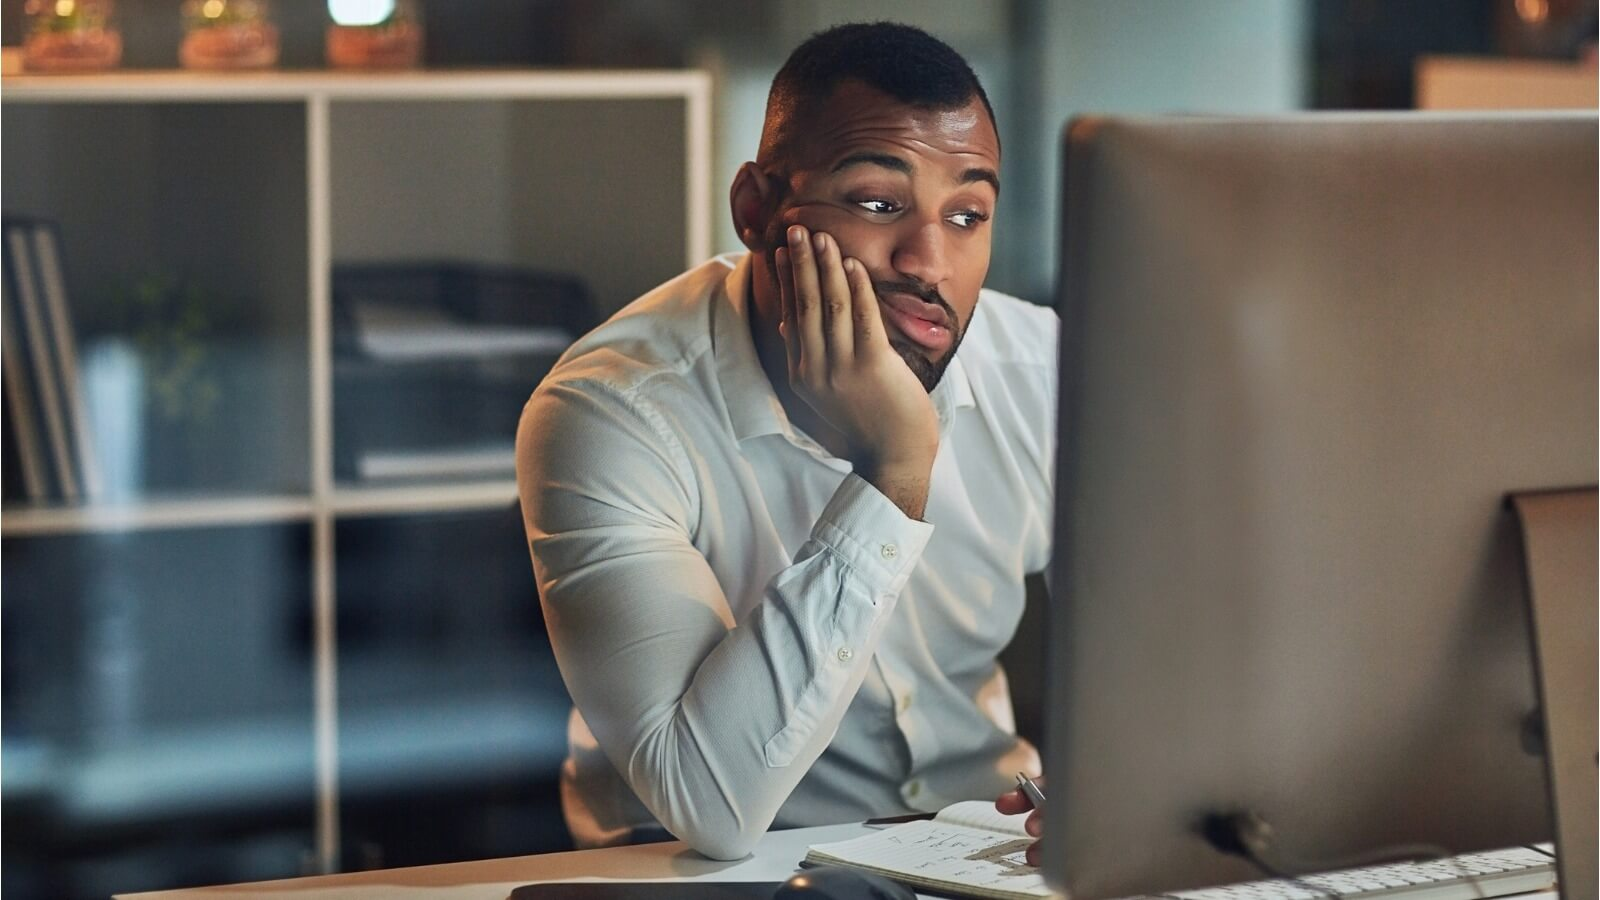 Man staring at computer screen with frustrated look